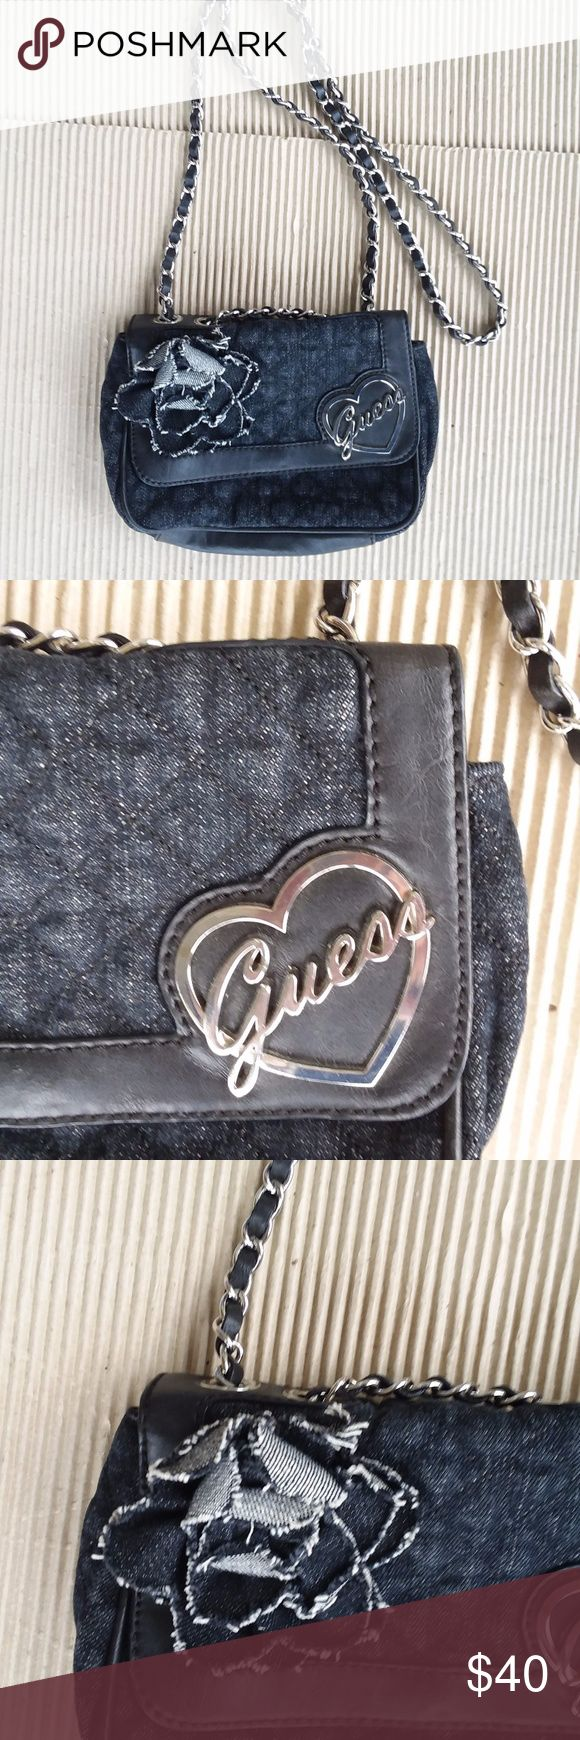 Vintage GUESS Handbag Black Jeans On Heart Gorgeous black jean handbag brand of GUESS. This handbag's name brand is GUESS on the heart and flower as see picture, and handbag will be great for fitting unisex. Good condition but please be making sure to see all photos. Guess Bags Clutches & Wristlets